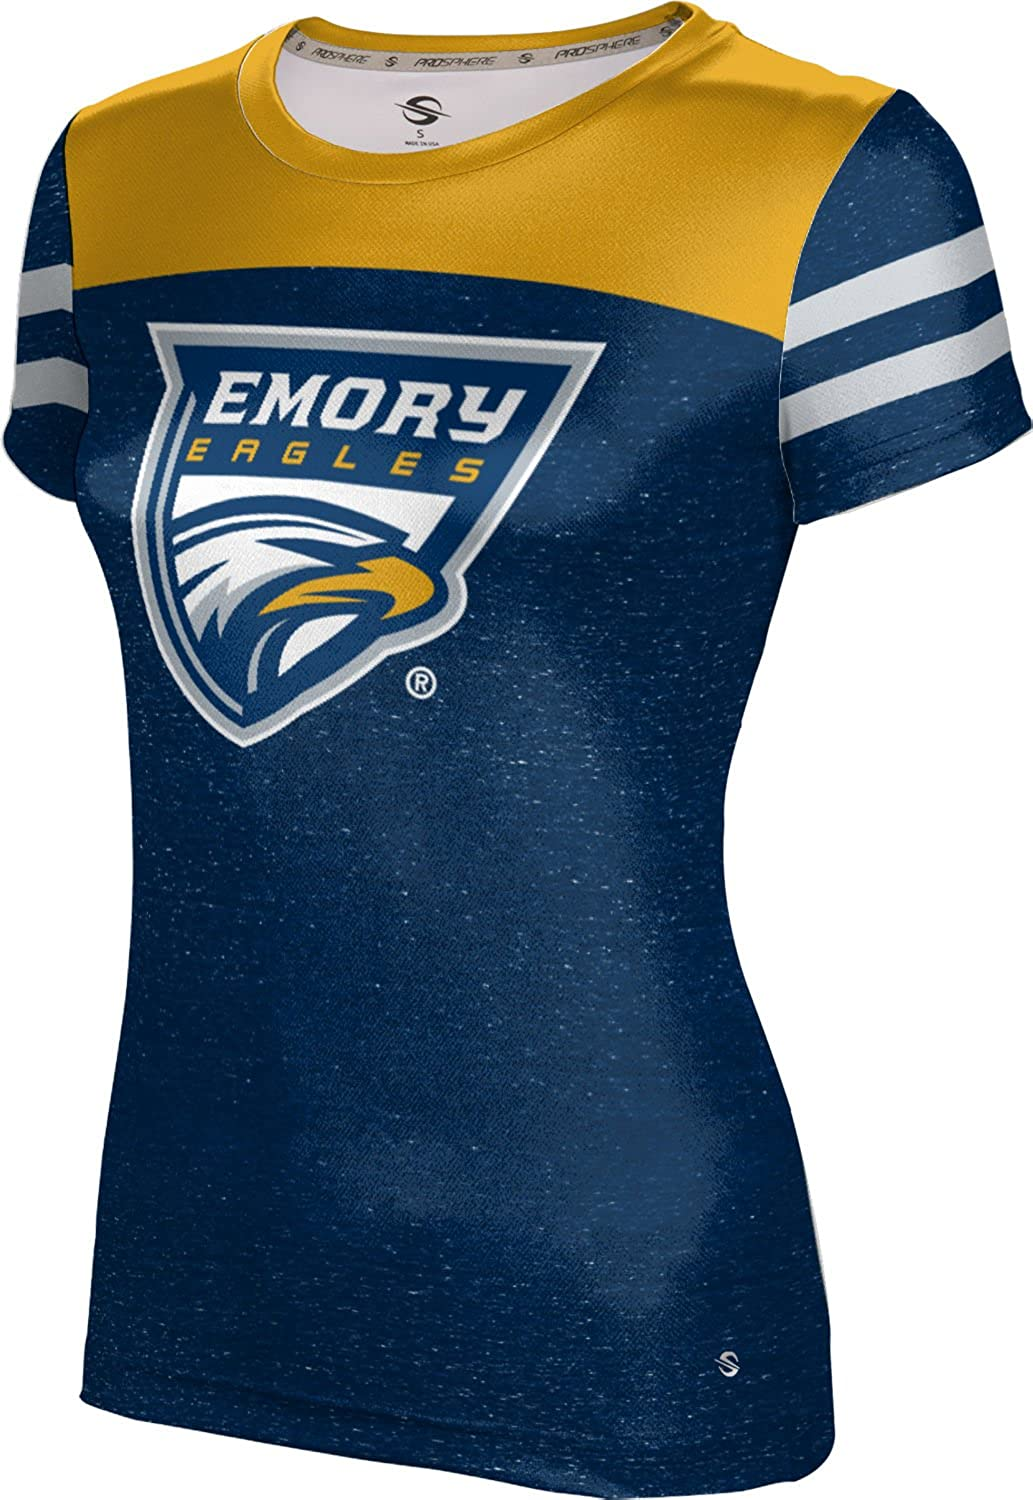 ProSphere Emory University Girls Performance T-Shirt Gameday